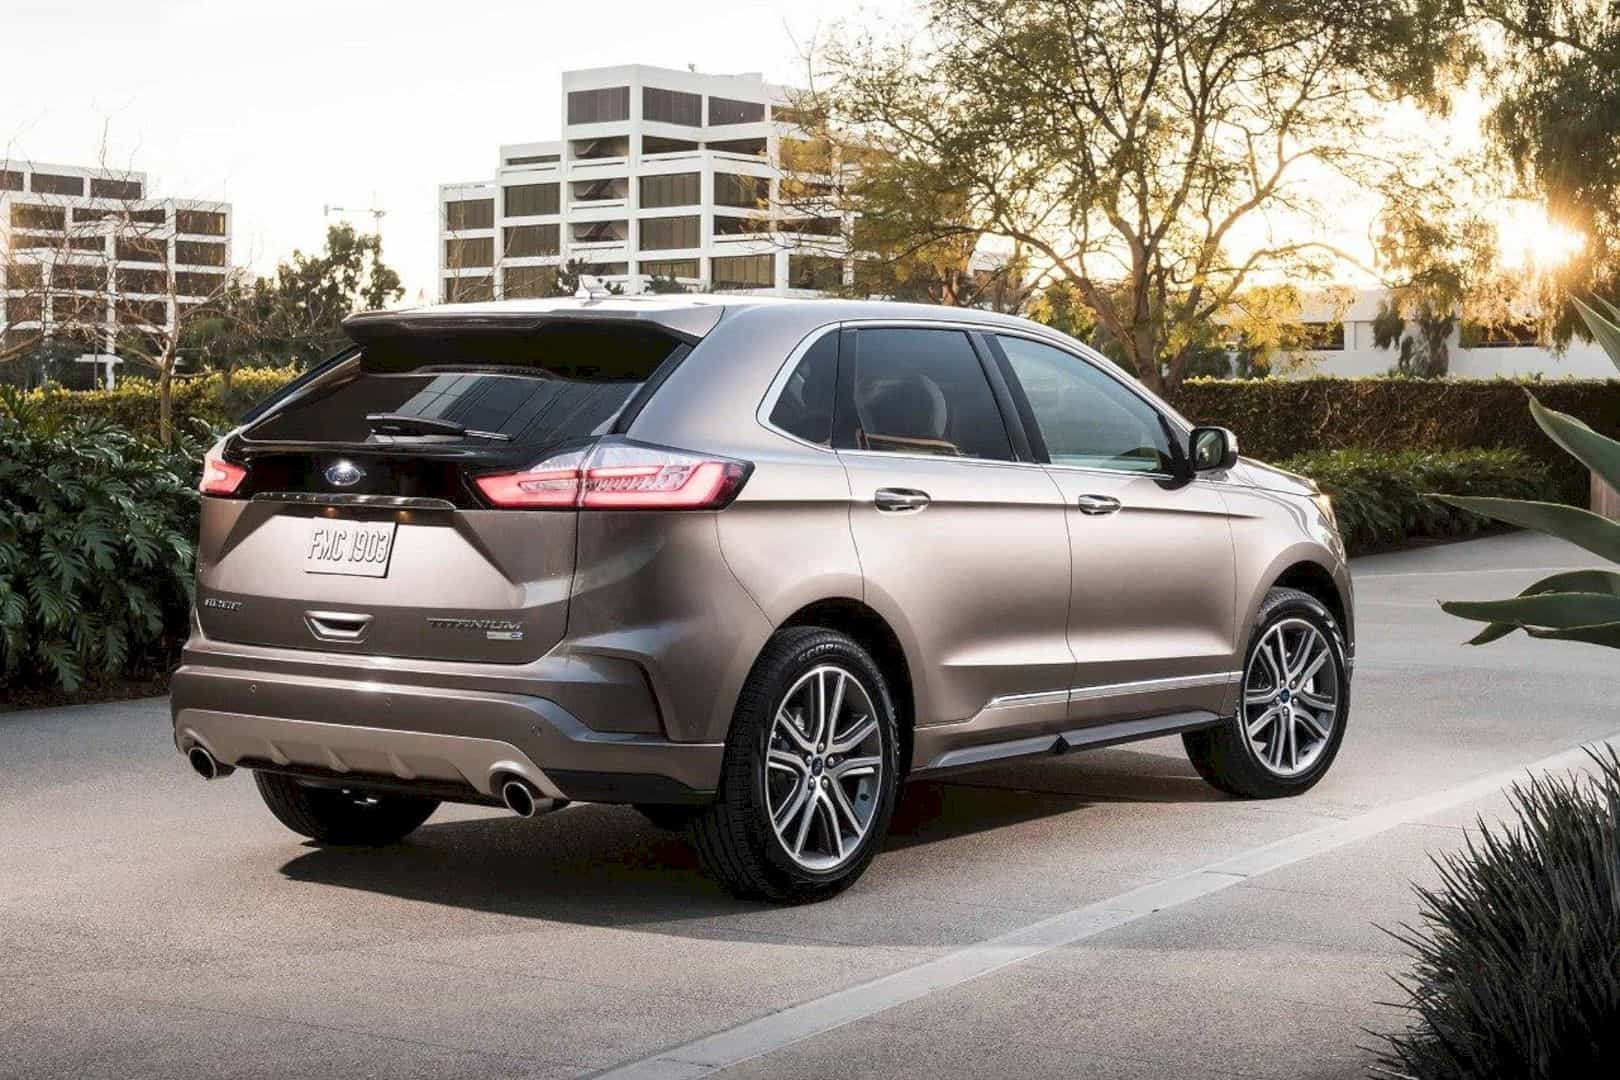 96 The Ford Edge New Design Photos